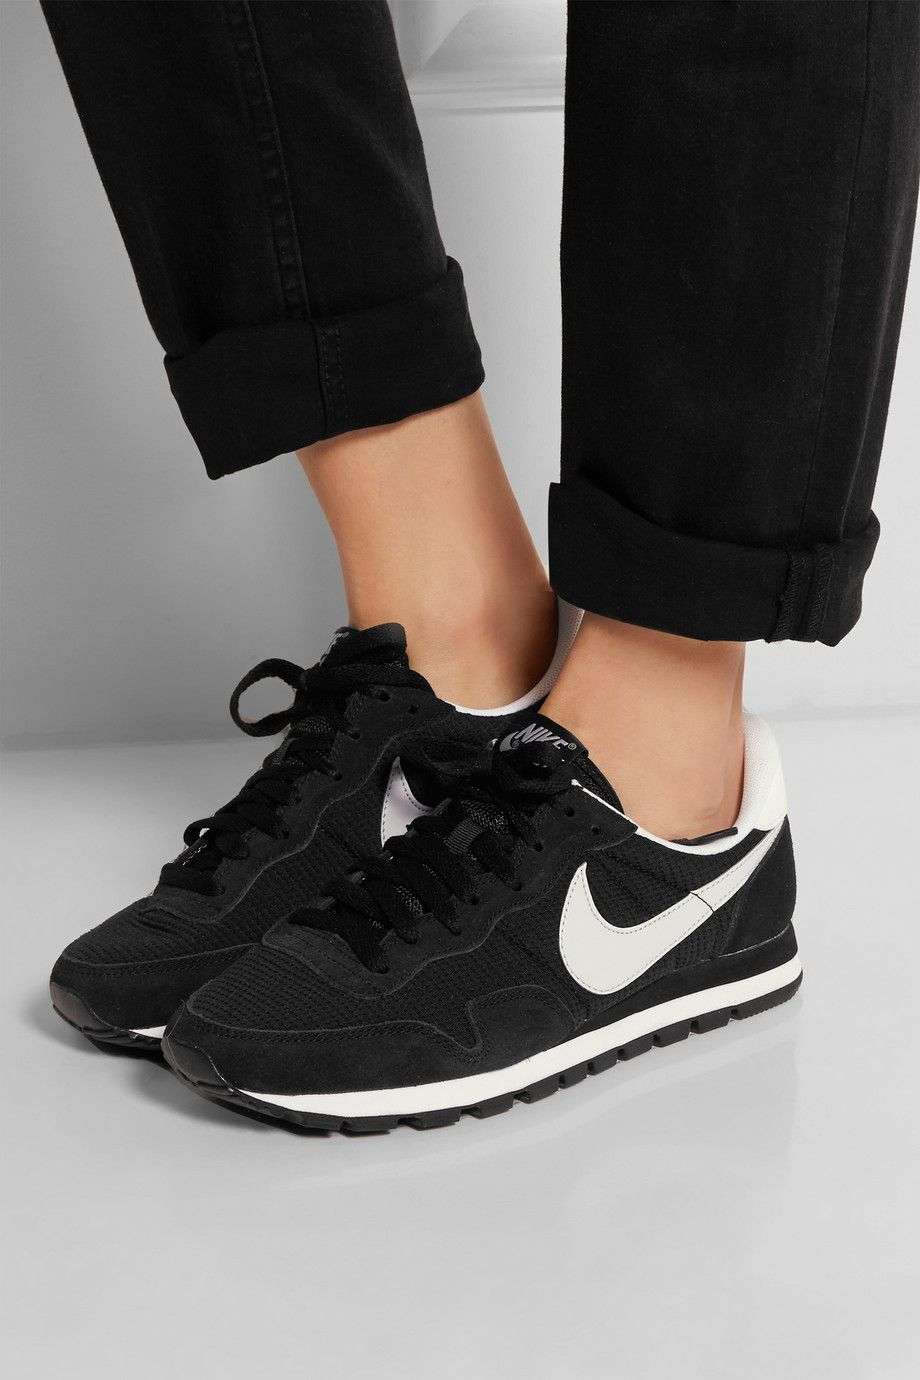 online retailer 70ab1 7e63b Nike  Air Pegasus 83 suede, leather and mesh sneakers  NET-A-PORTER.COM